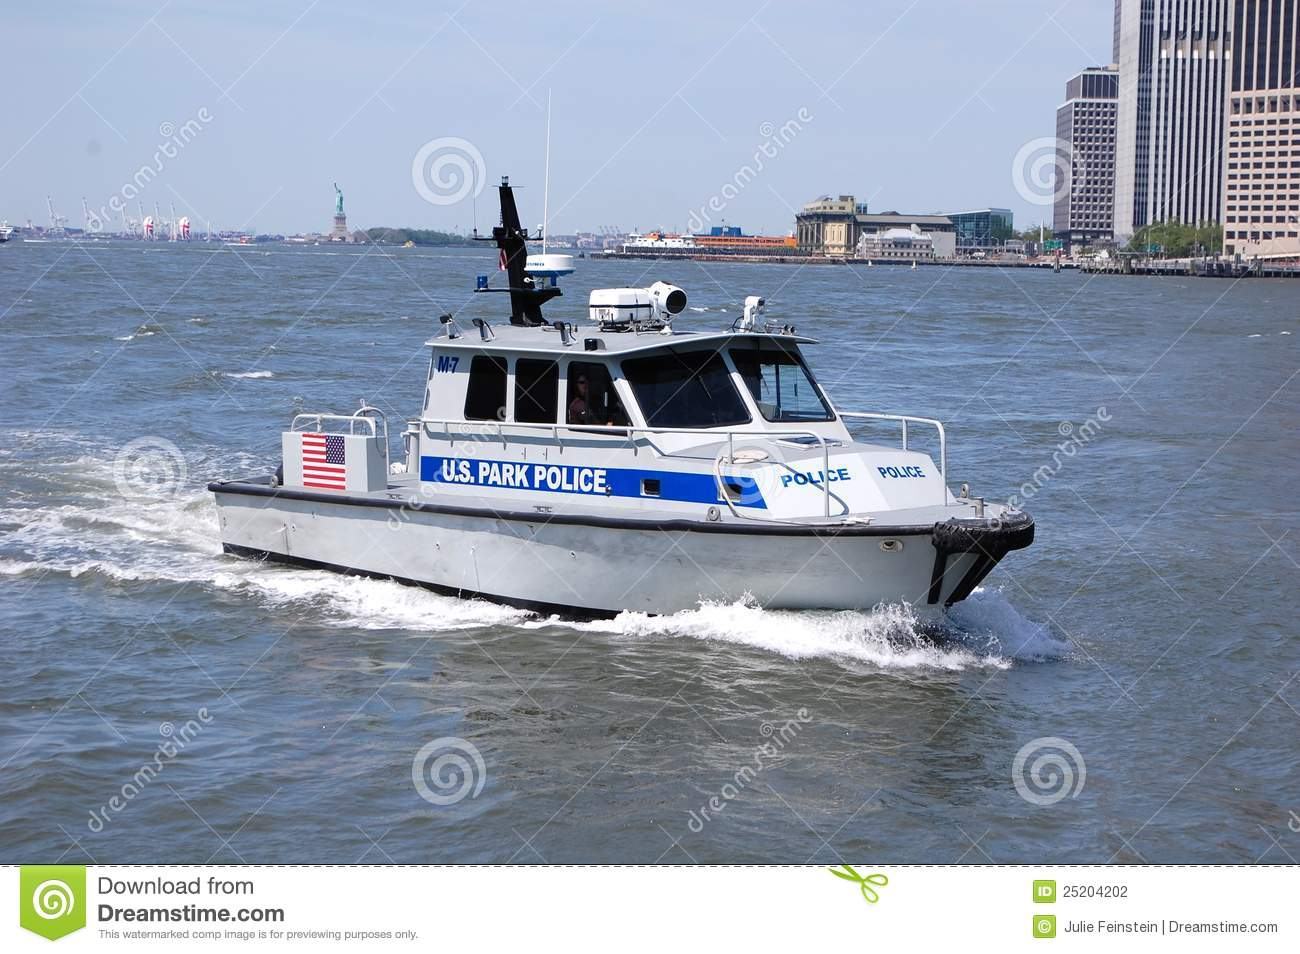 American Police Boat Stock Photos, Images, & Pictures.